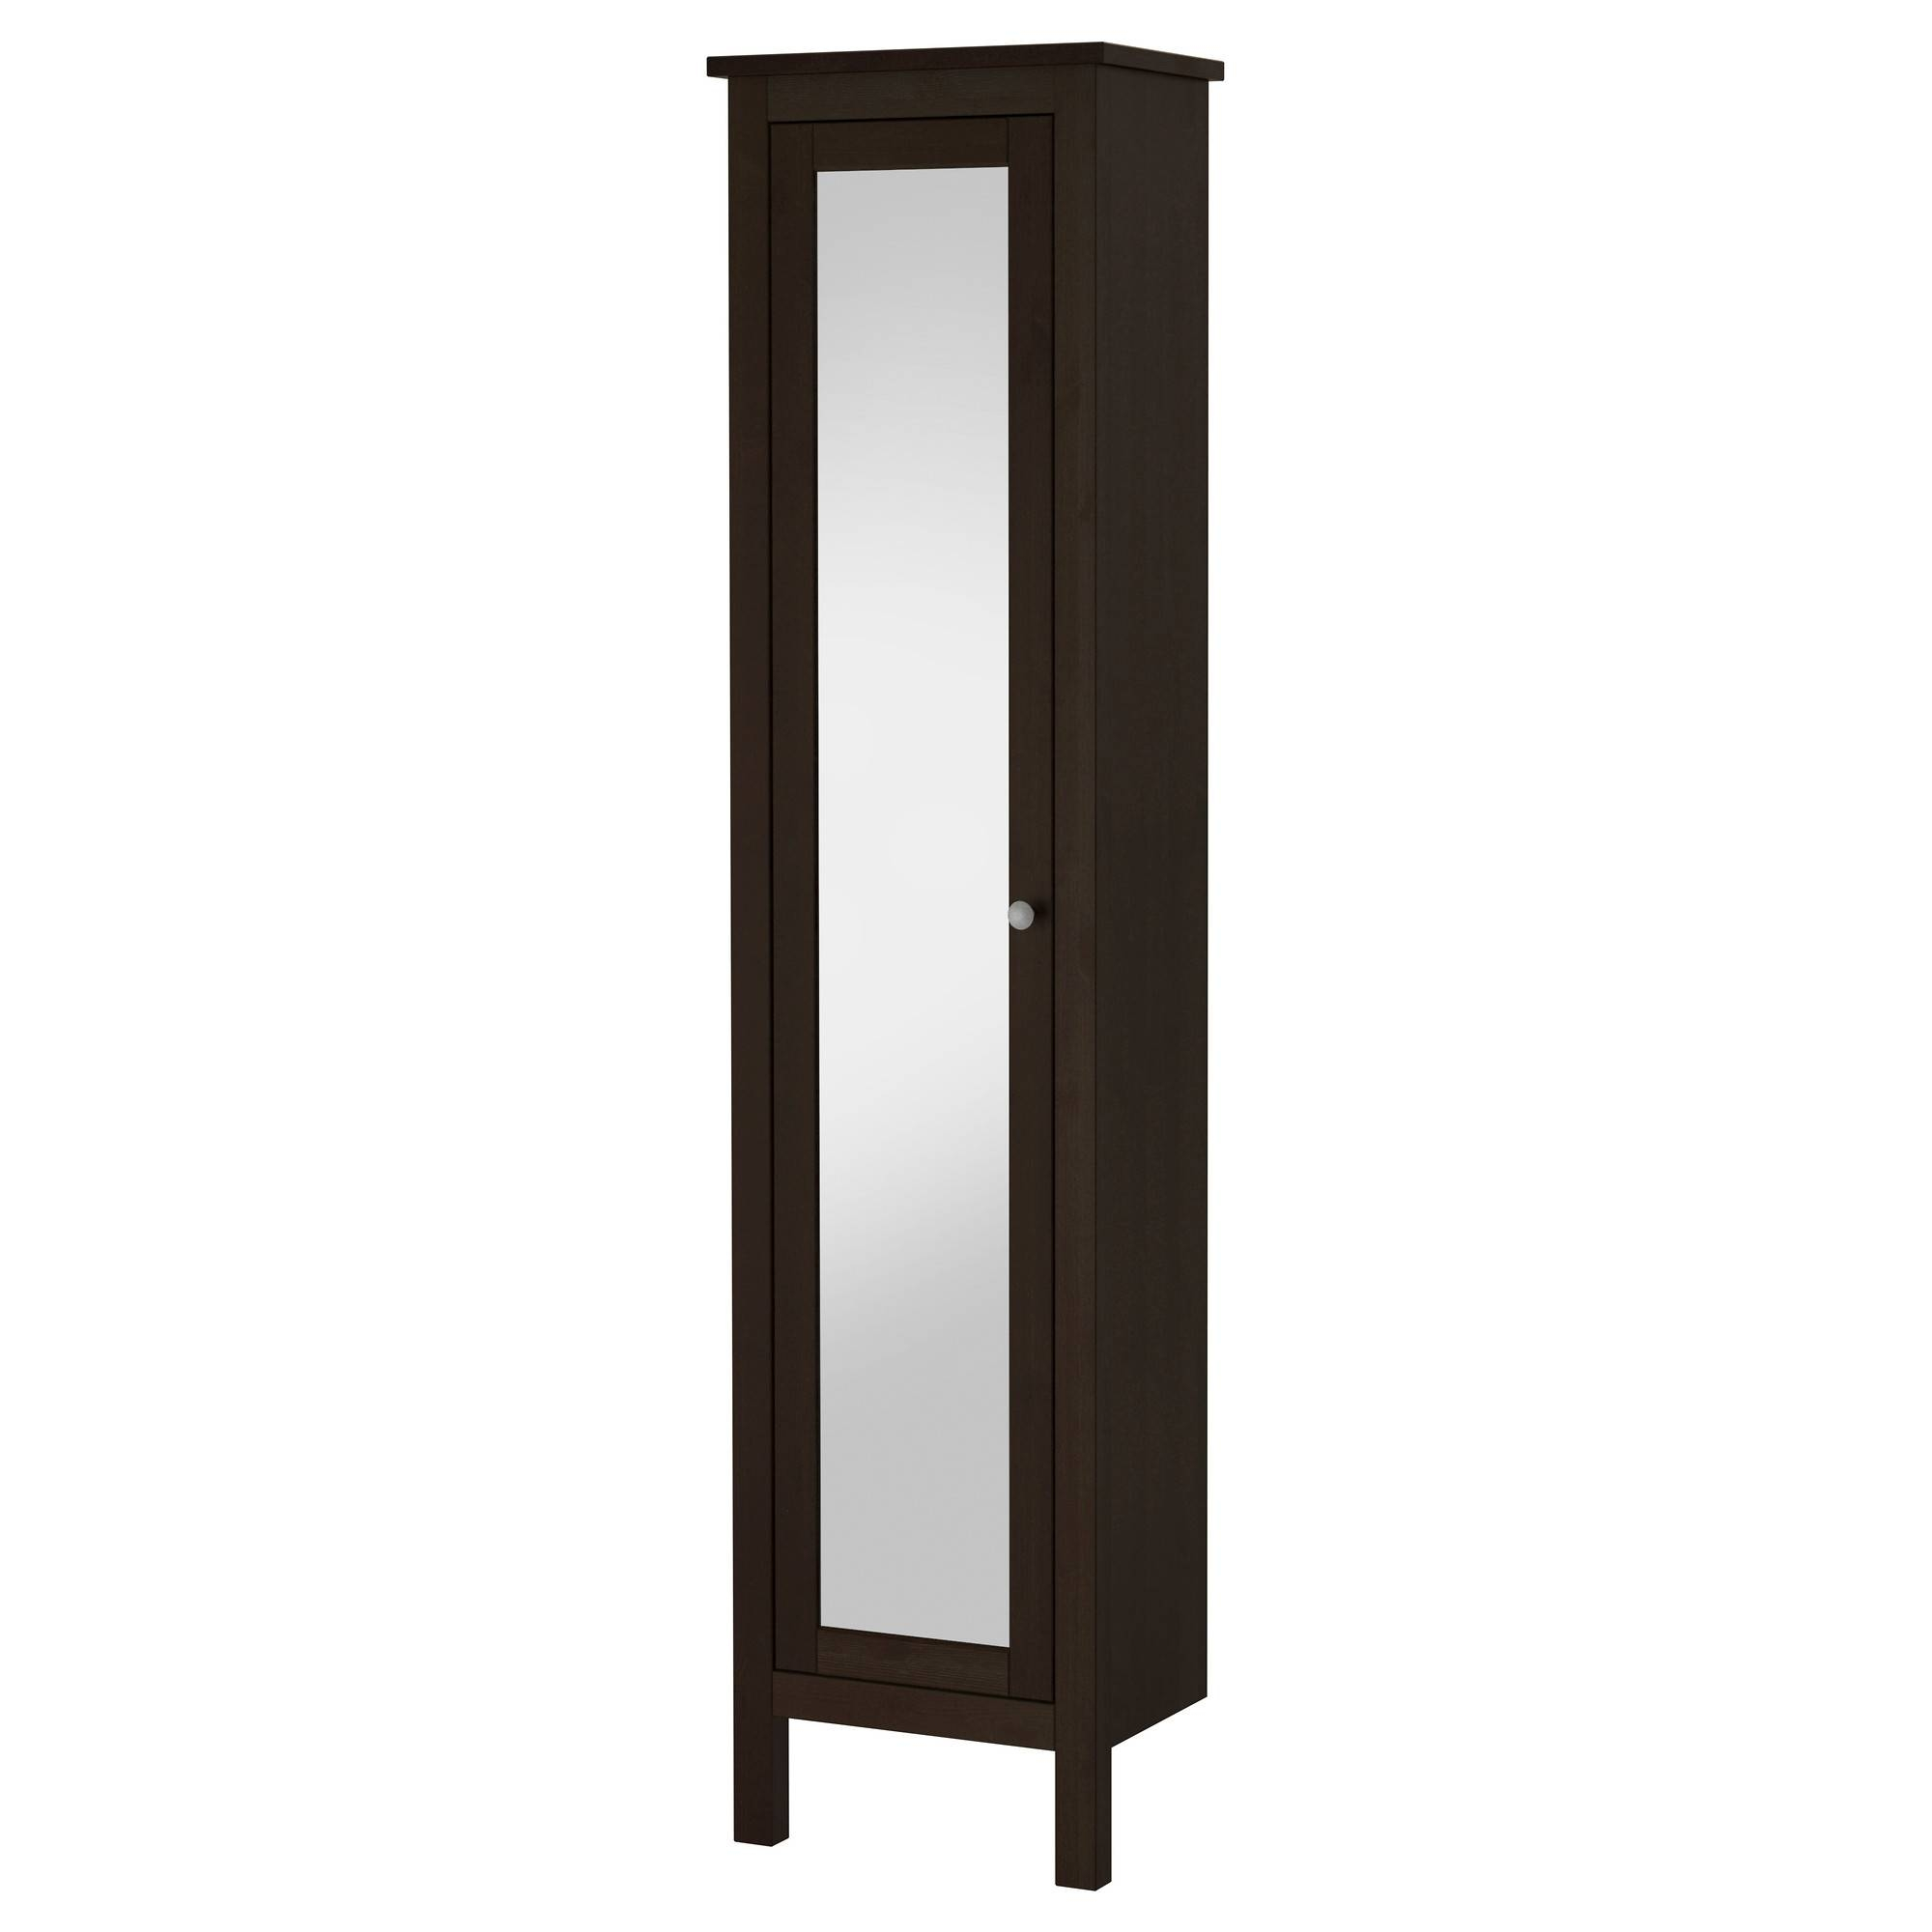 Hemnes High Cabinet With Mirror Door   Black Brown Stain   Ikea Throughout Black Cabinet Mirrors (Photo 12 of 15)